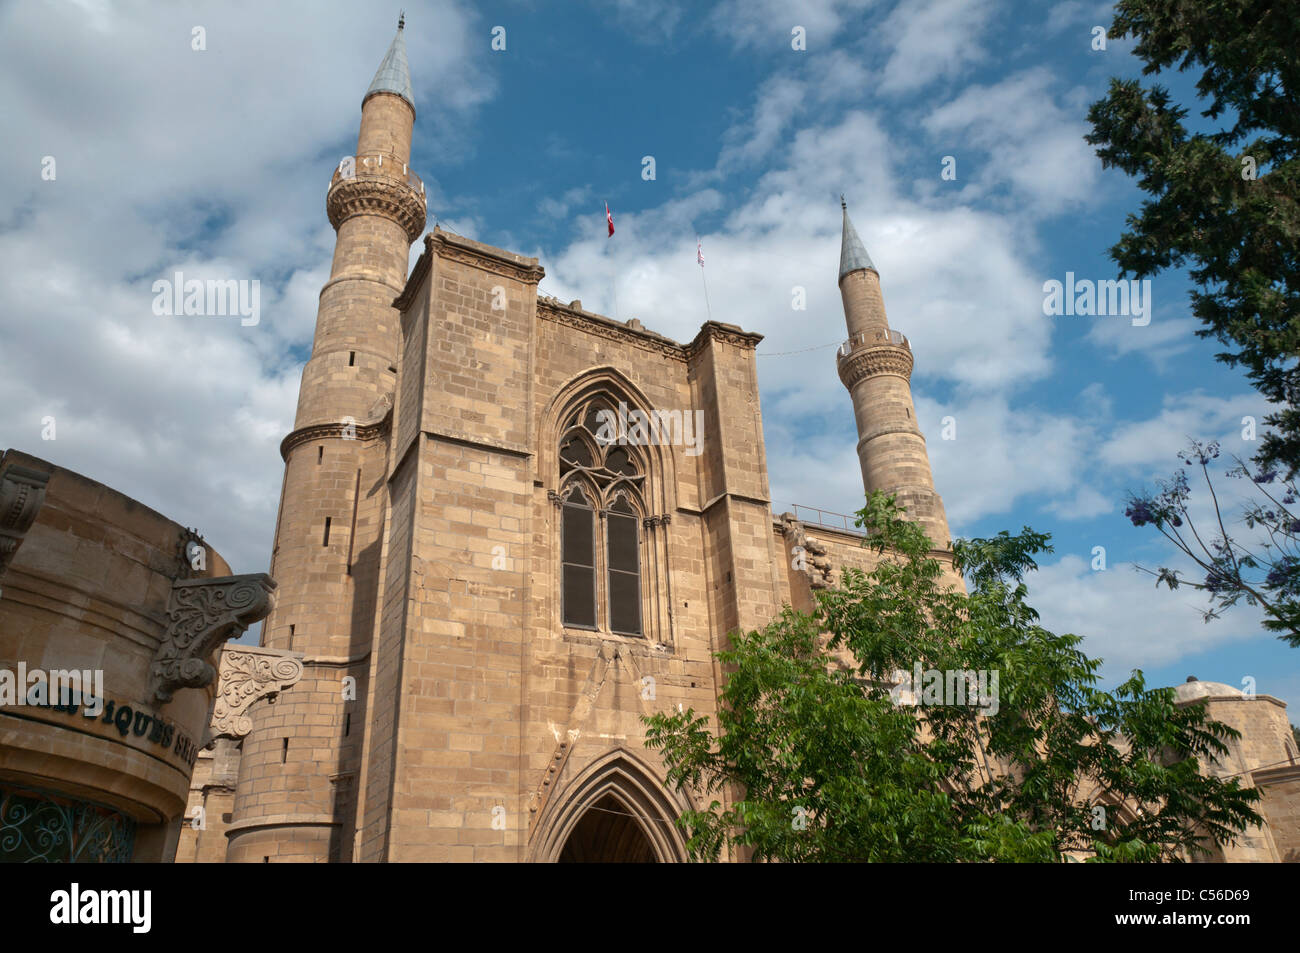 Selimiye Mosque formerly St Sophia Cathedral,Nicosia,Lefkosa,Turkish Republic of Northern Cyprus - Stock Image